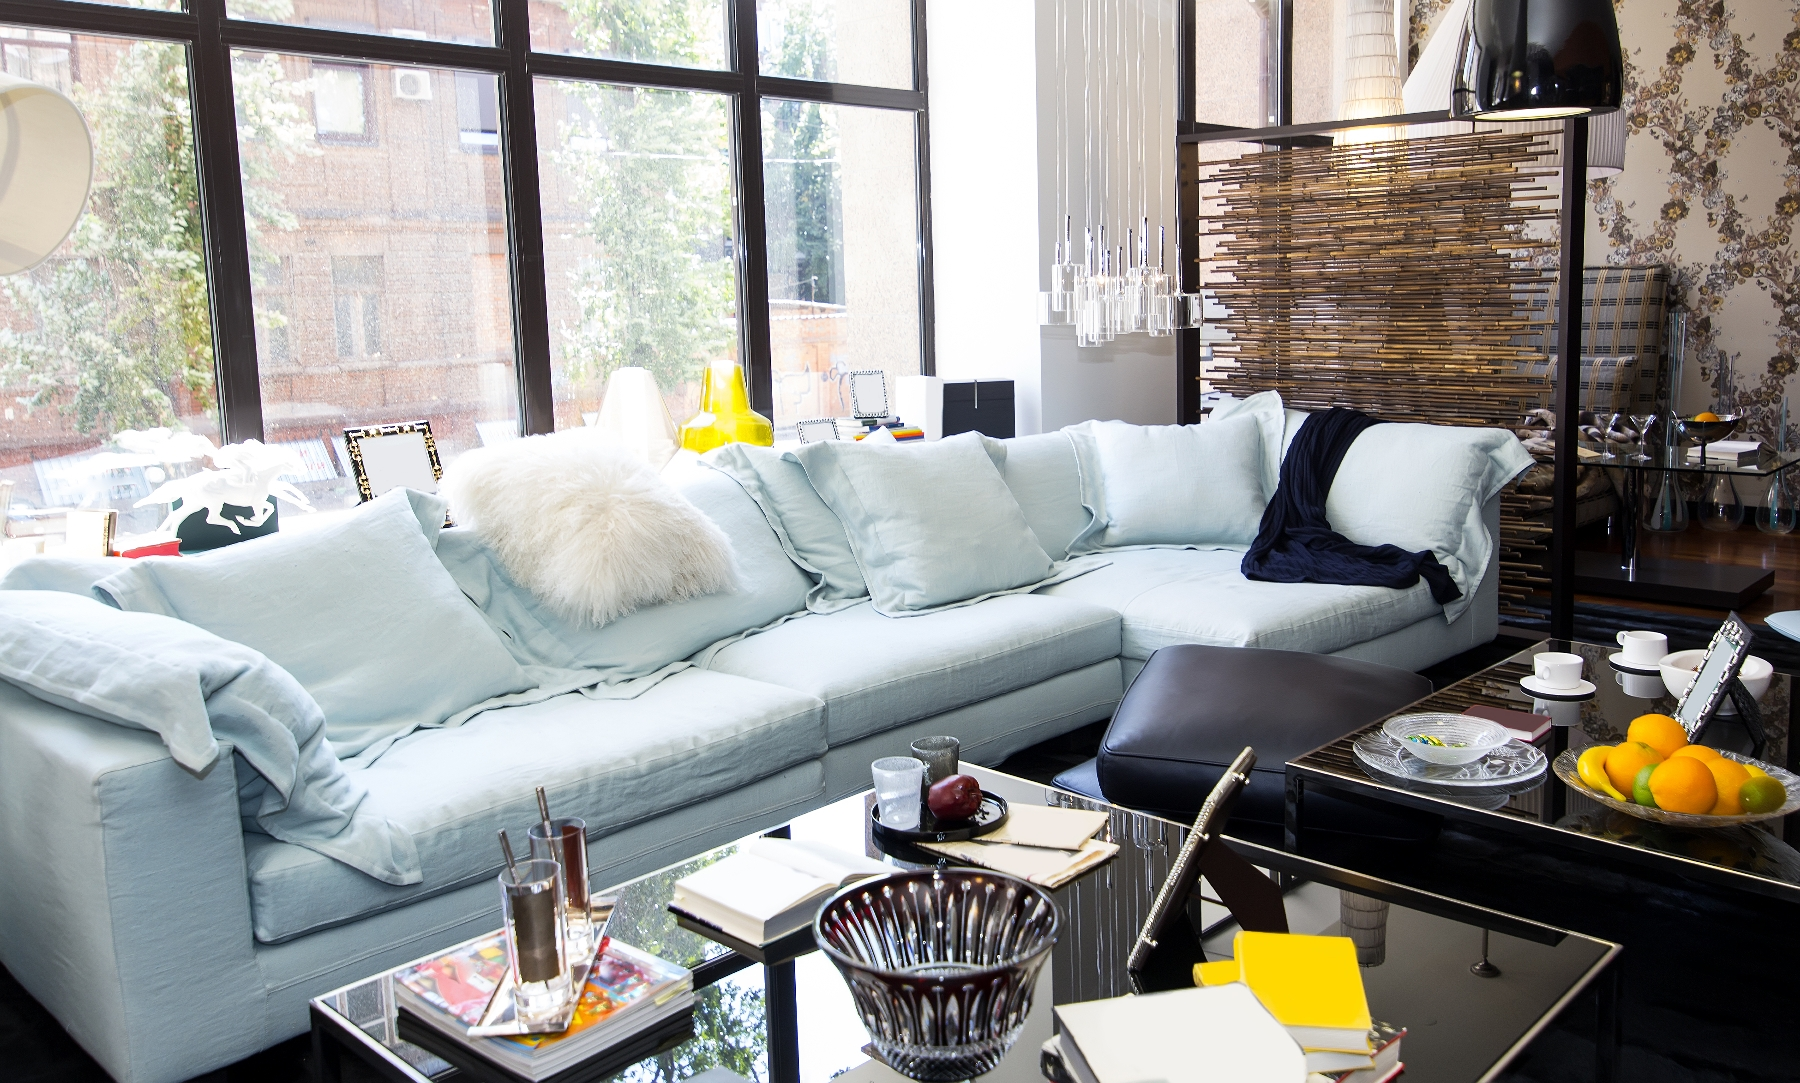 How To Easily Follow Interior Design Trends On A Budget The San Diego Furniture Rental Blog